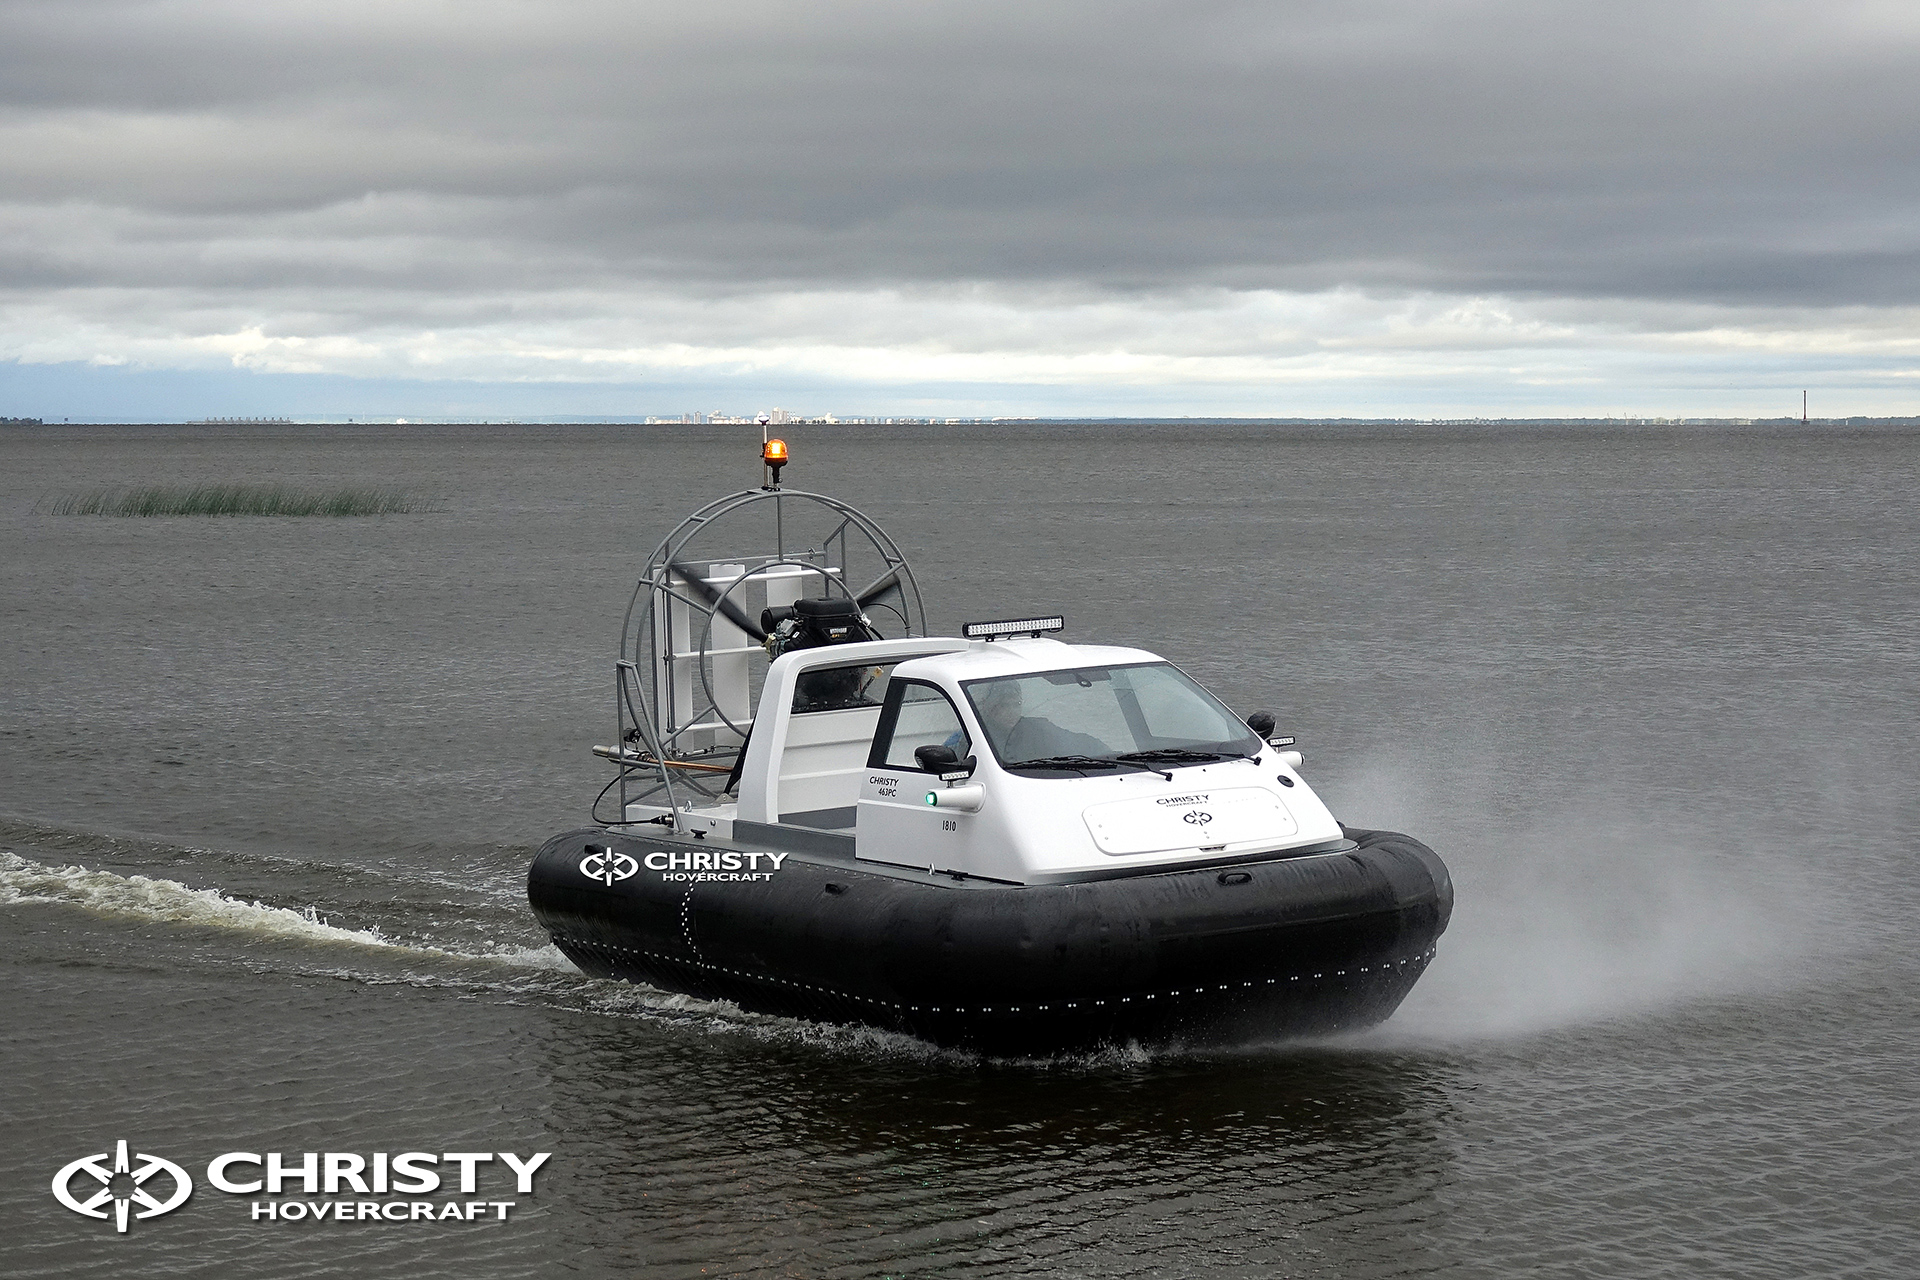 Hovercraft Christy 463 PC in Storm 290618 24.jpg | фото №22